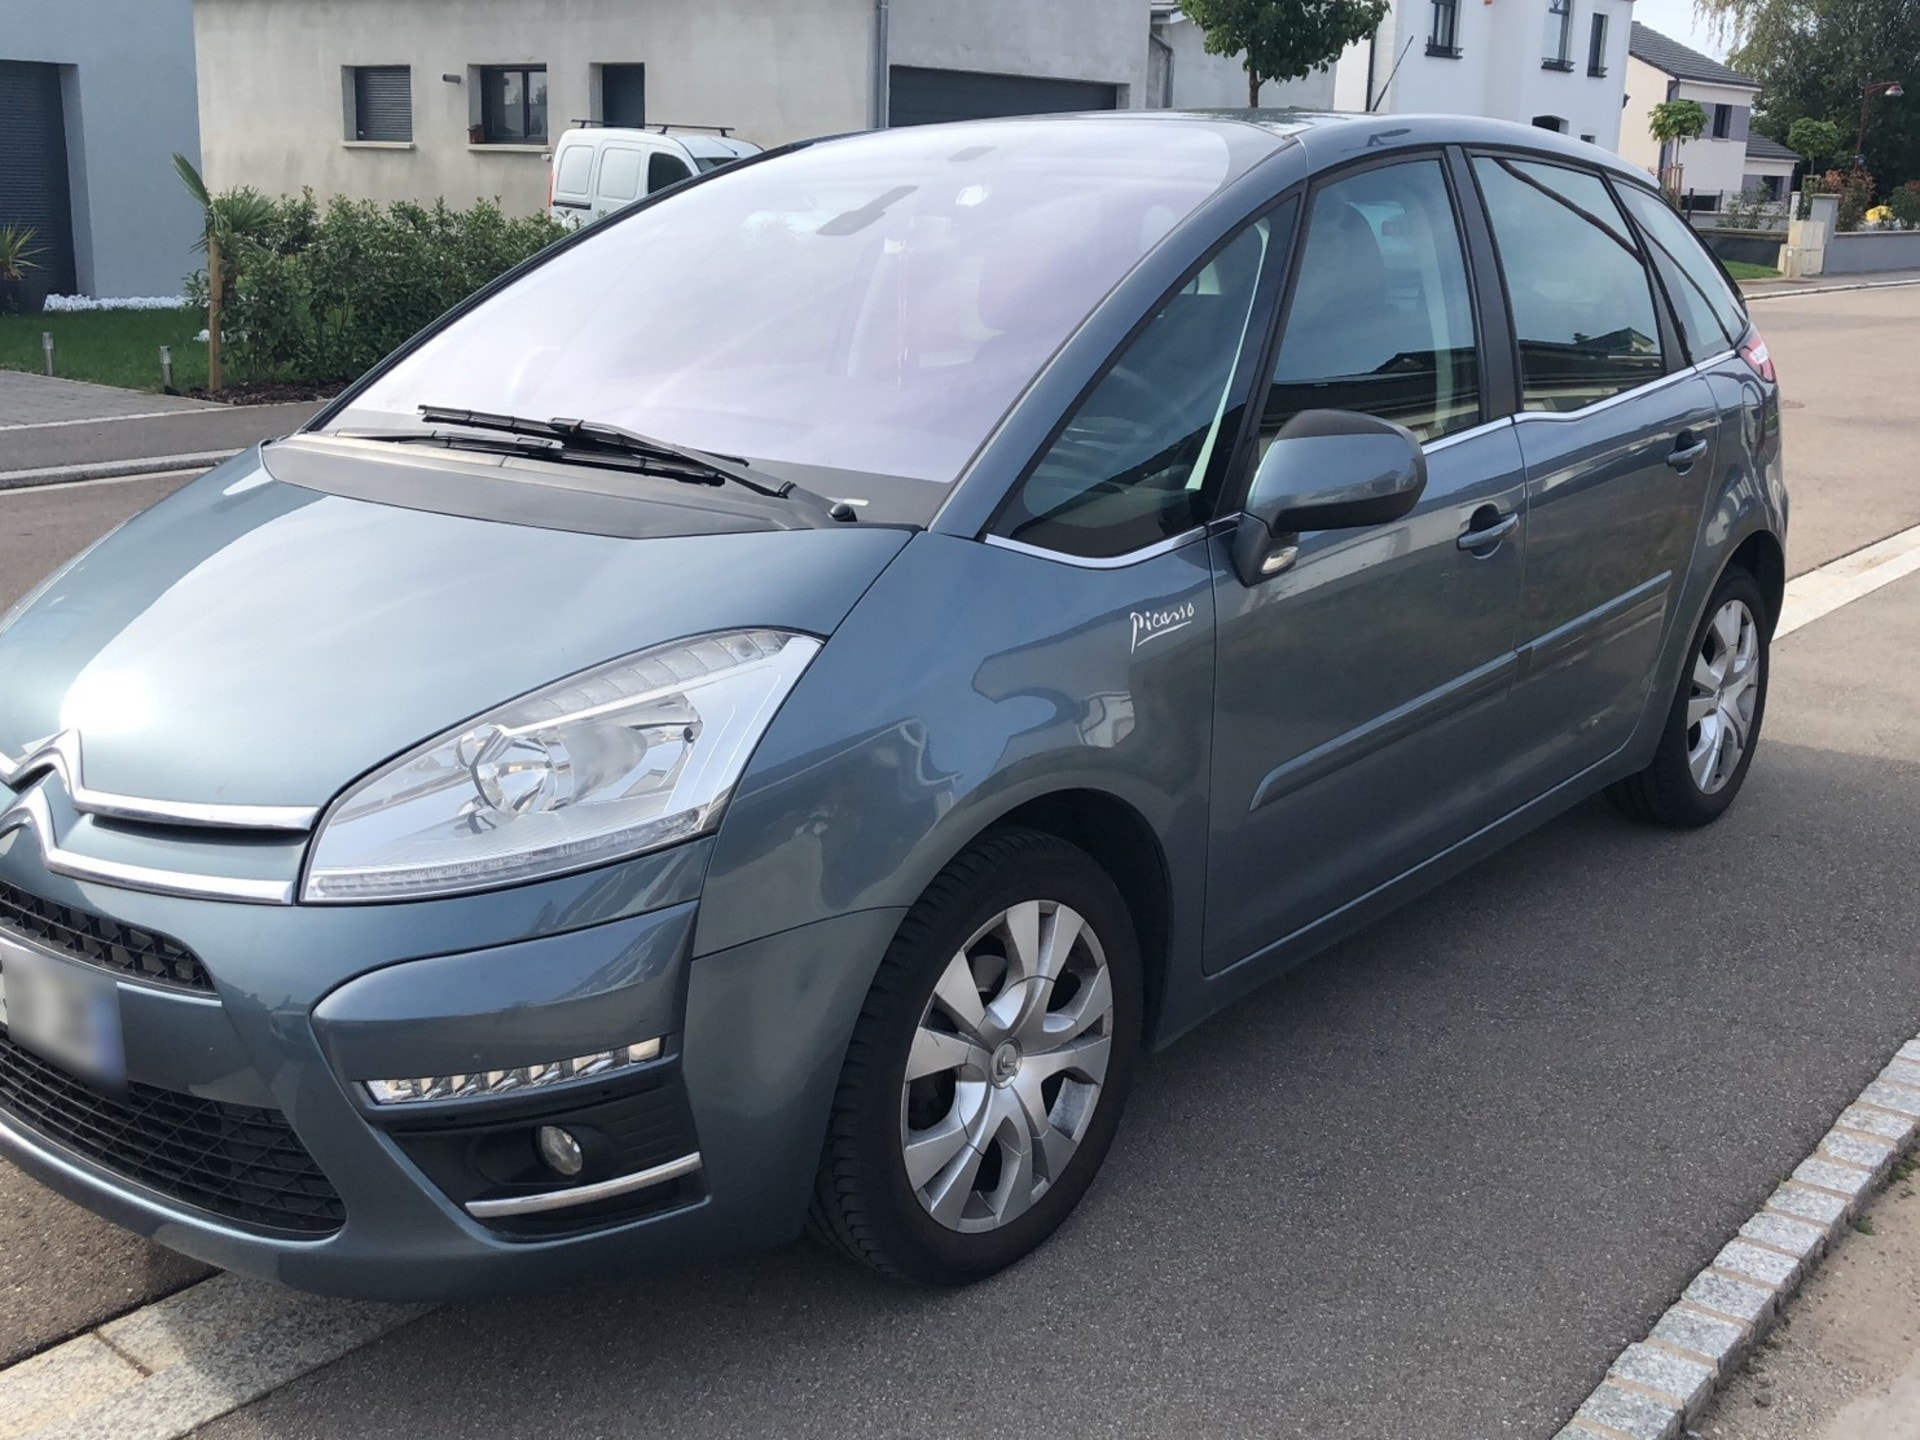 CITROEN C4 PICASSO 1.6 HDI 110 EXCLUSIVE - Carverntura